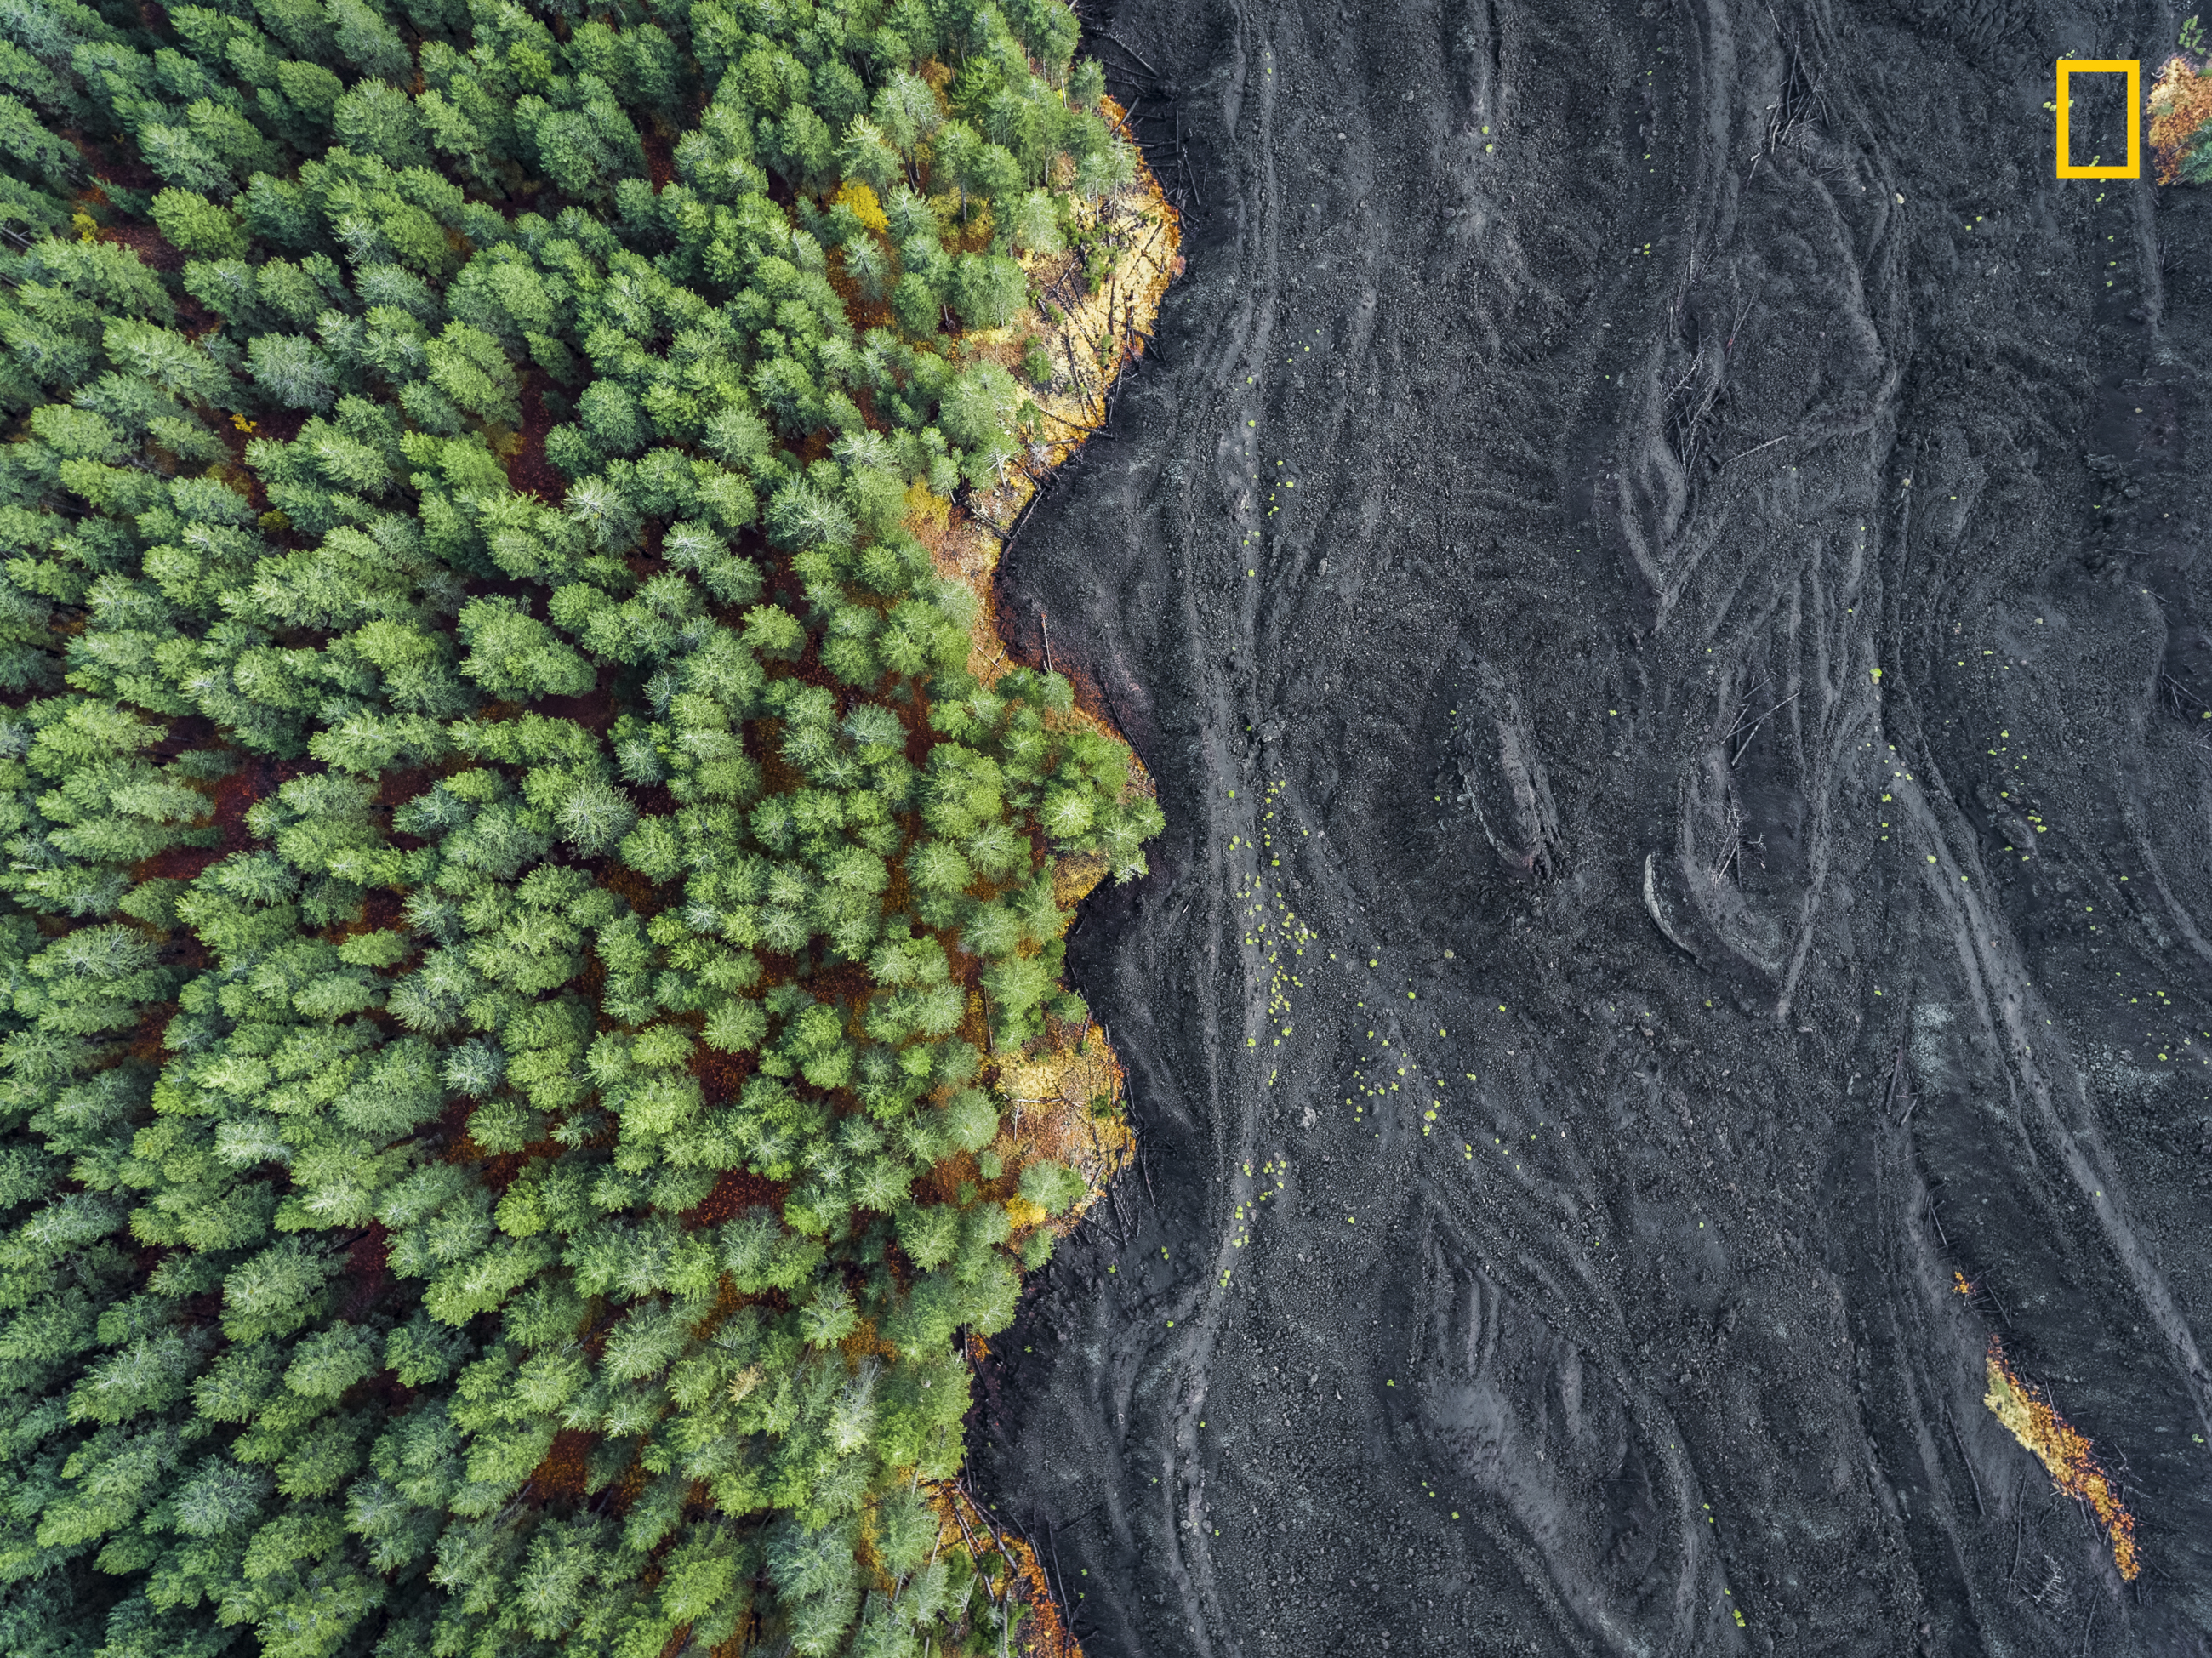 Photo And Caption By Placido Faranda National Geographic Travel Photographer Of The Year Contest Solidified Lava Vs Forest I Shot This Picture In Sicily